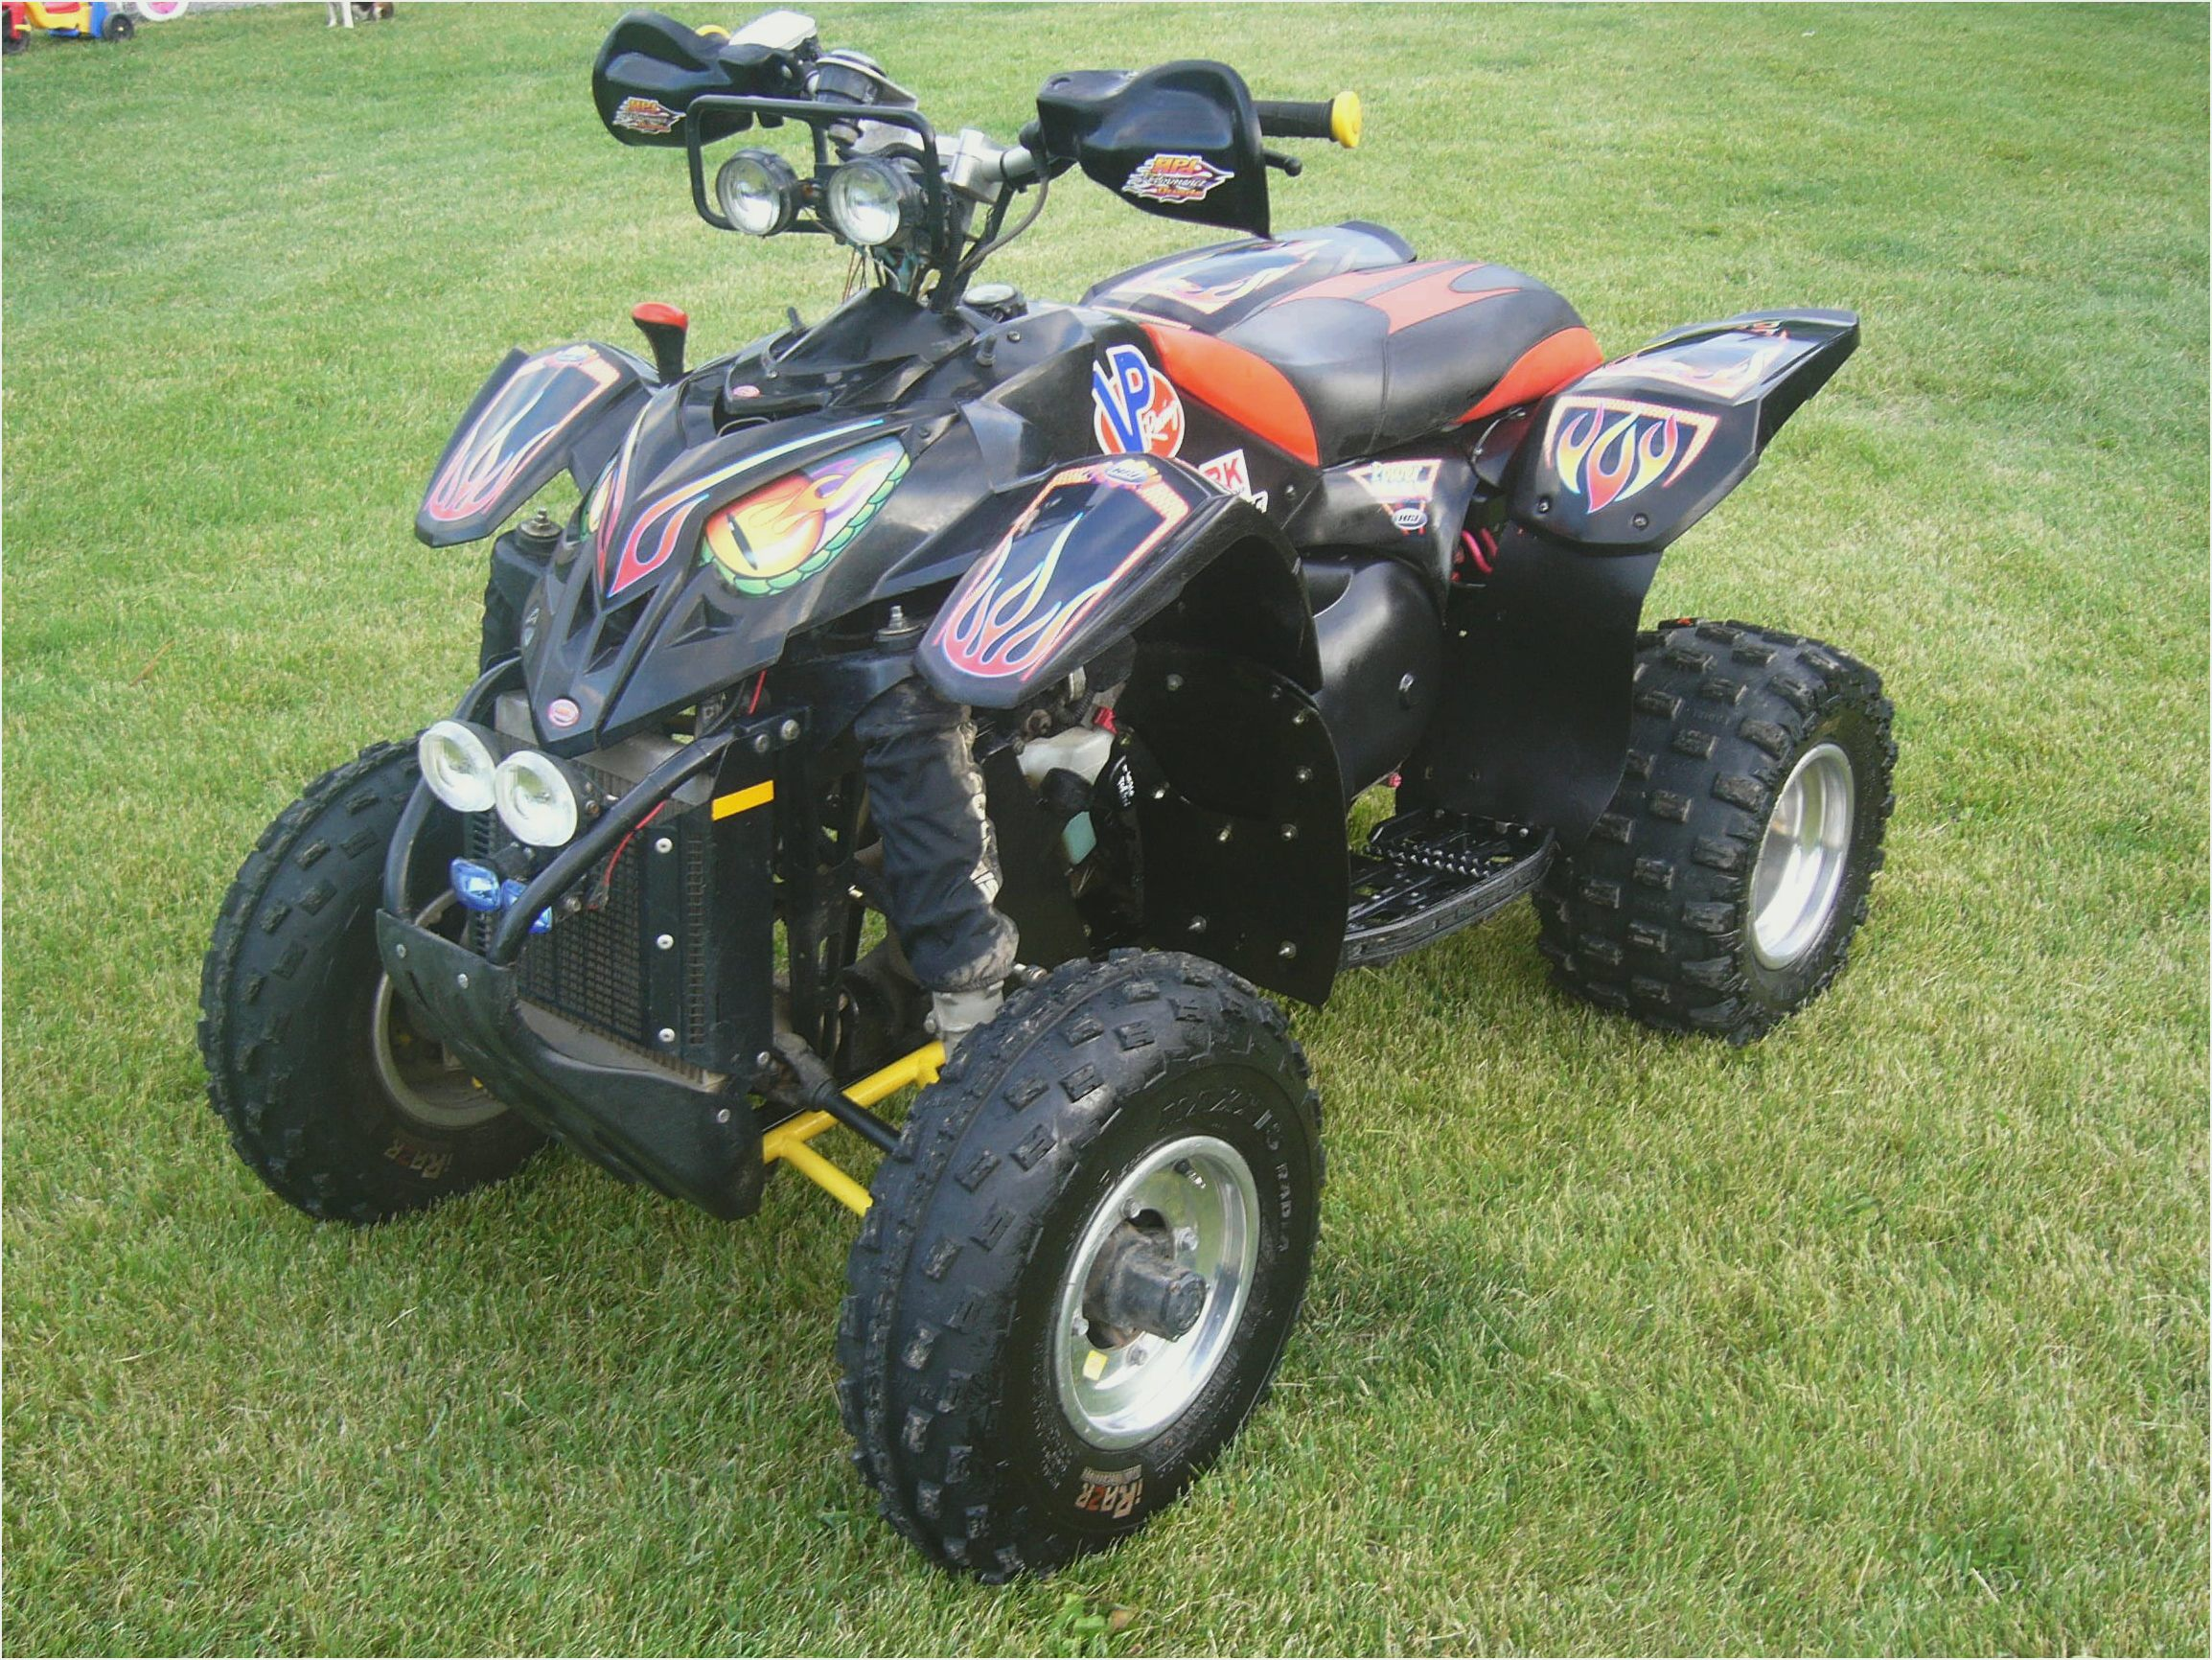 Polaris Scrambler 500 2008 images #121293